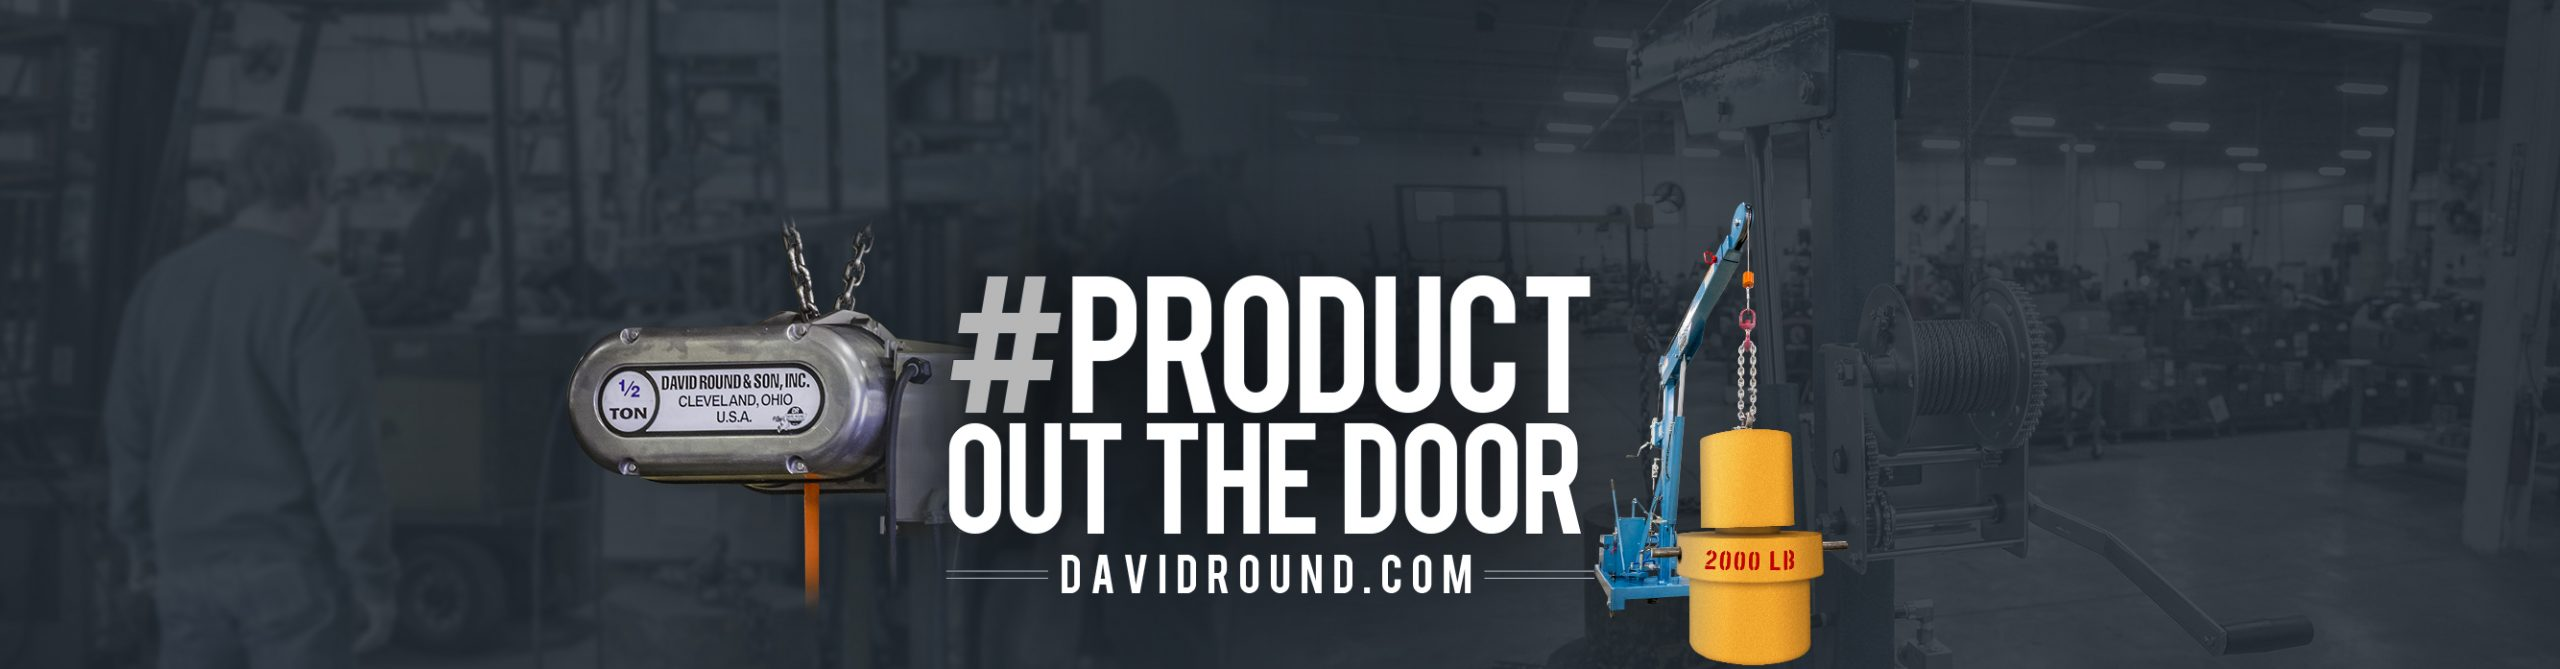 Product Out the Door by David Round